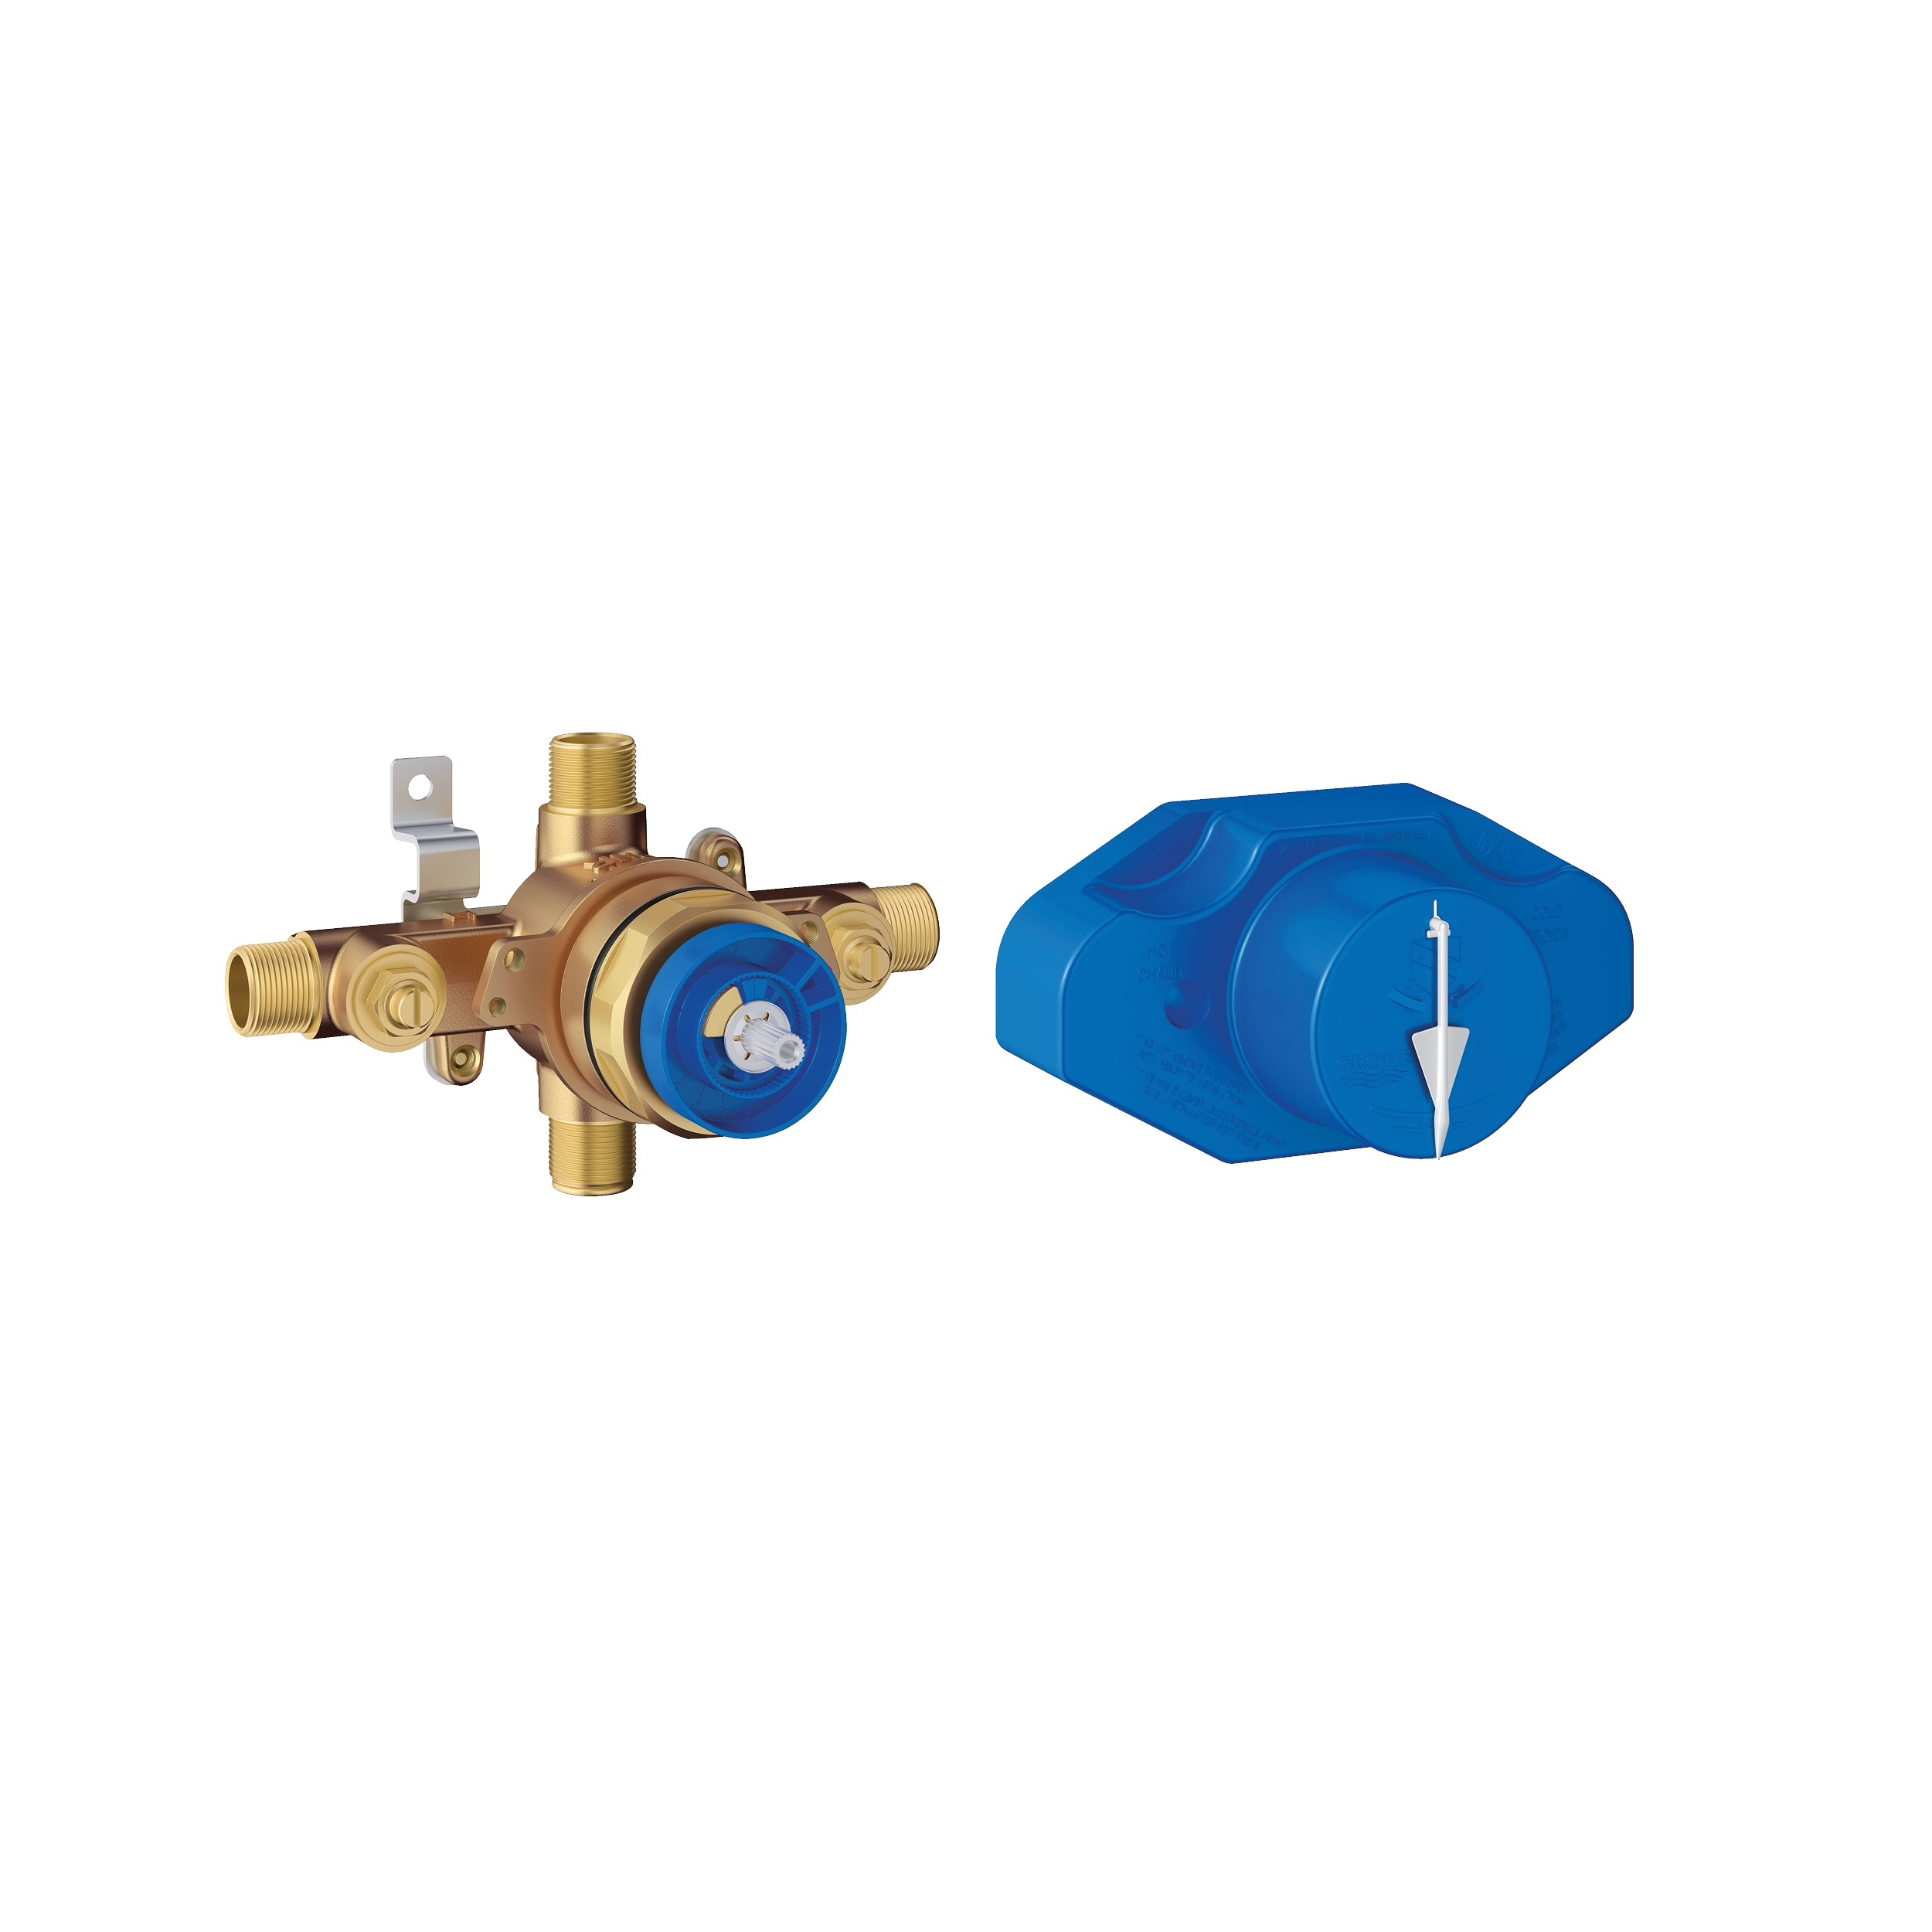 GROHE 35015001 Grohsafe™ Universal Rough-In Valve, 1/2 in C/MNPT Inlet x 1/2 in C/MNPT Outlet, Brass Body, Import